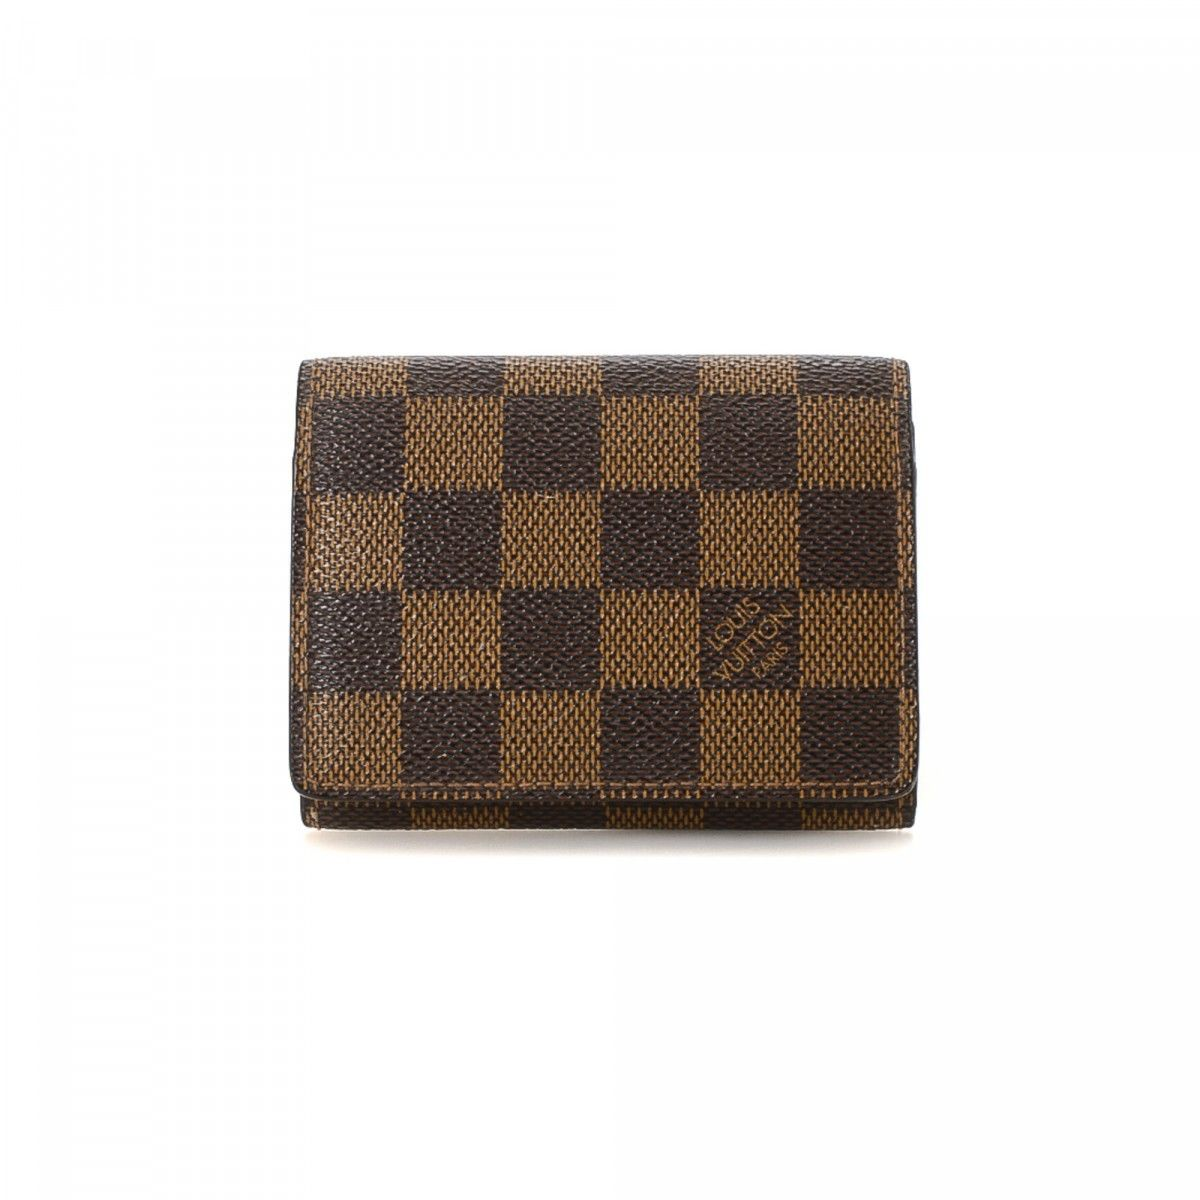 Vintage Business Card Case Choice Image - Free Business Cards